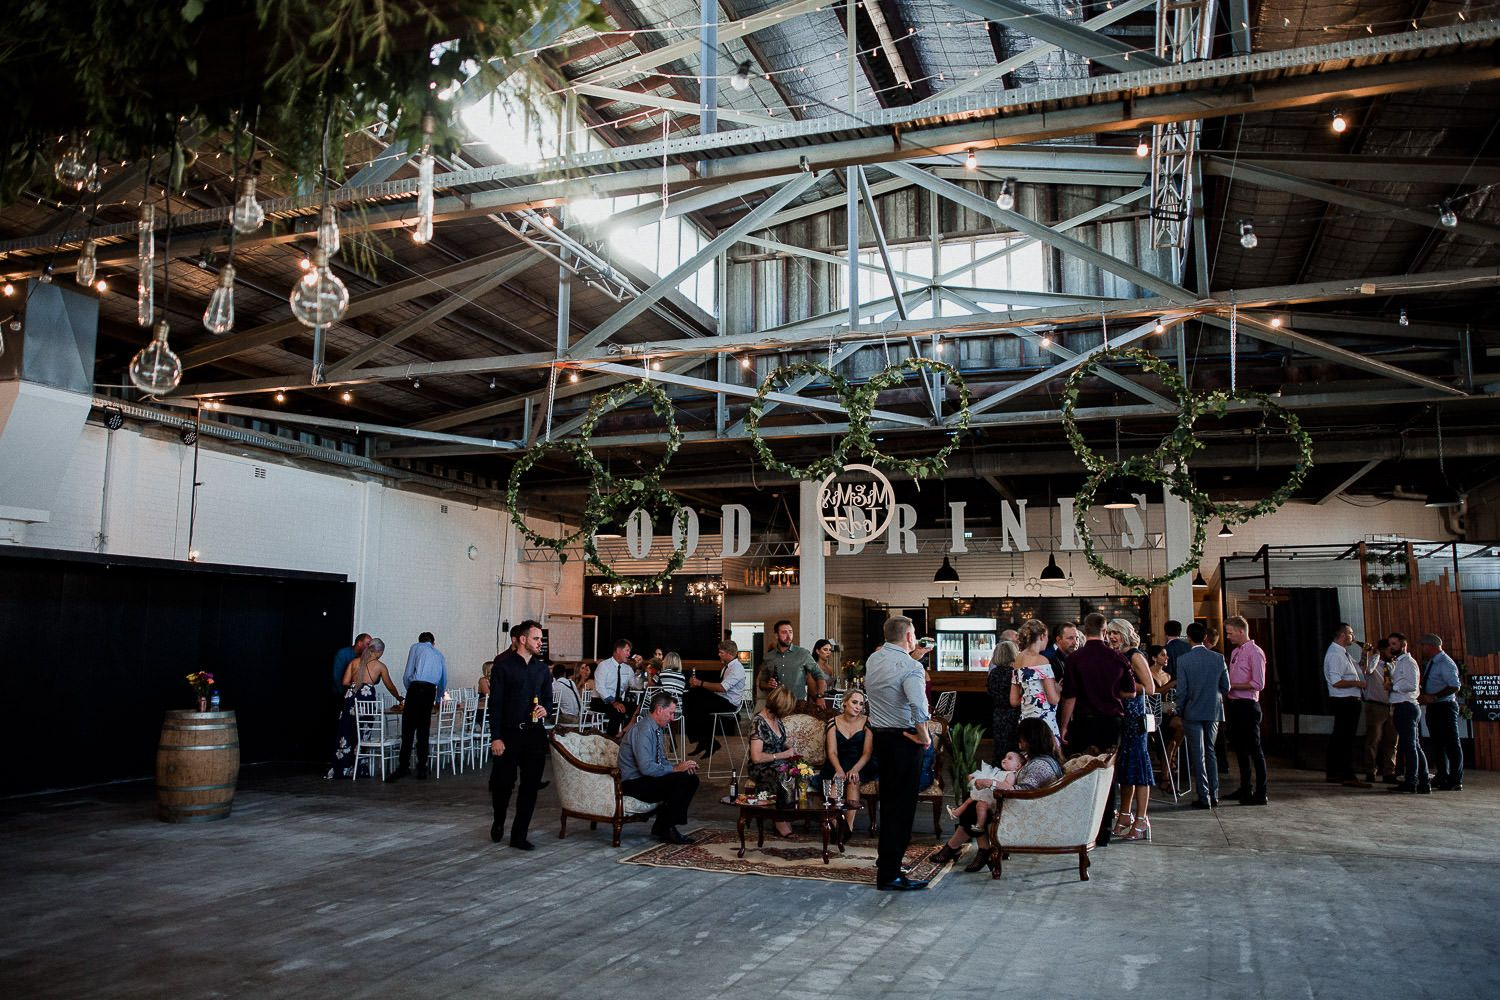 If you're looking for a rustic charm warehouse-style venue ...